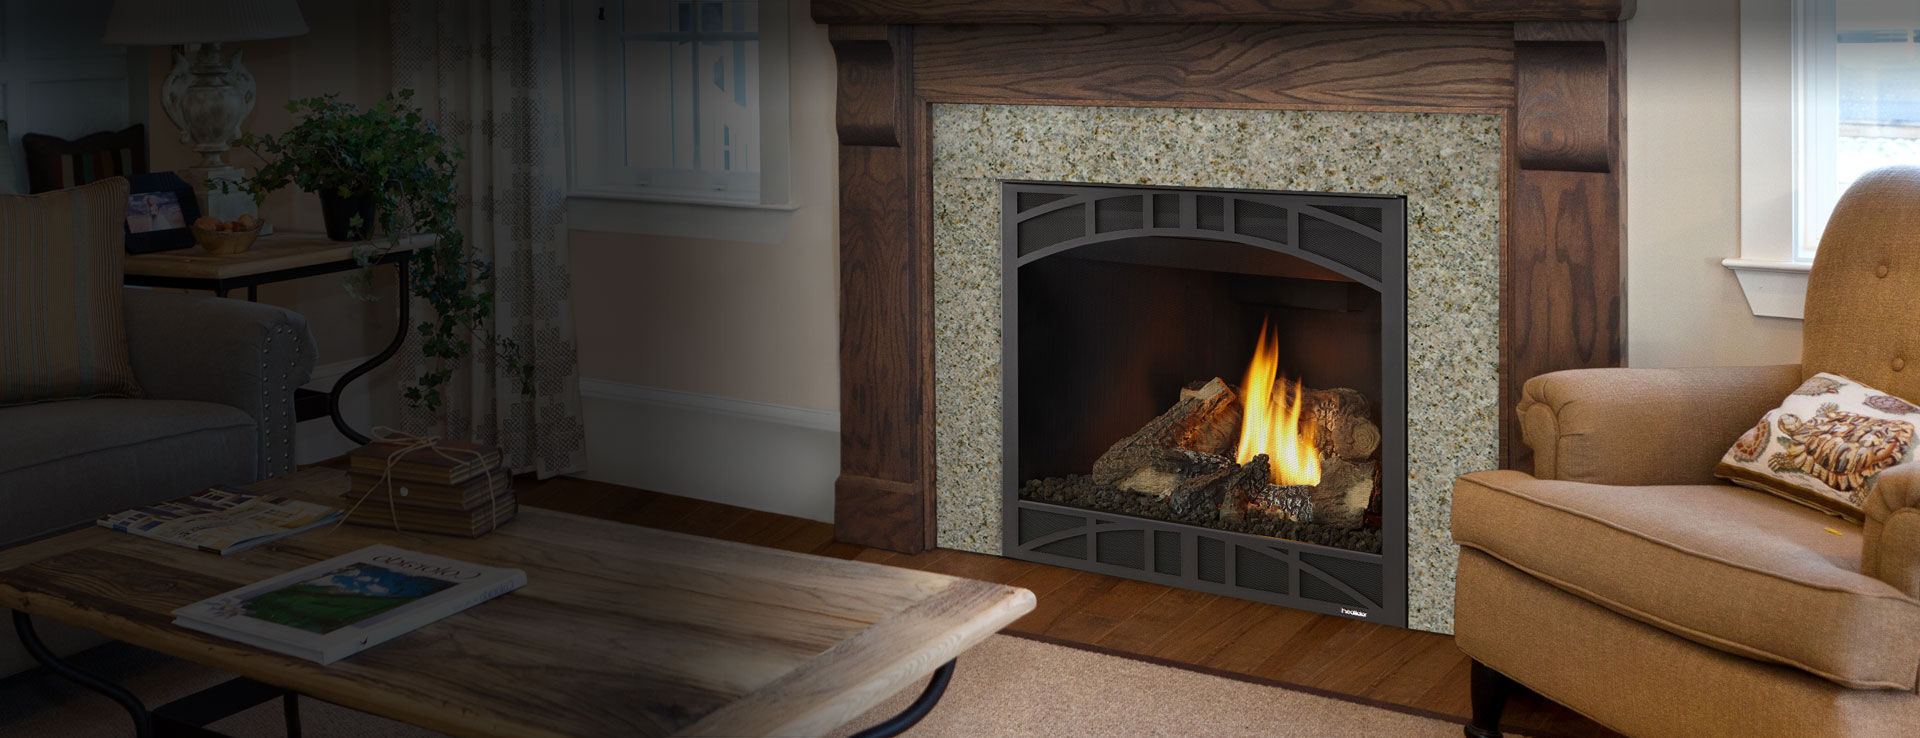 Novus Fireplace Gas Fireplace Traditional Closed Hearth Built In Novus